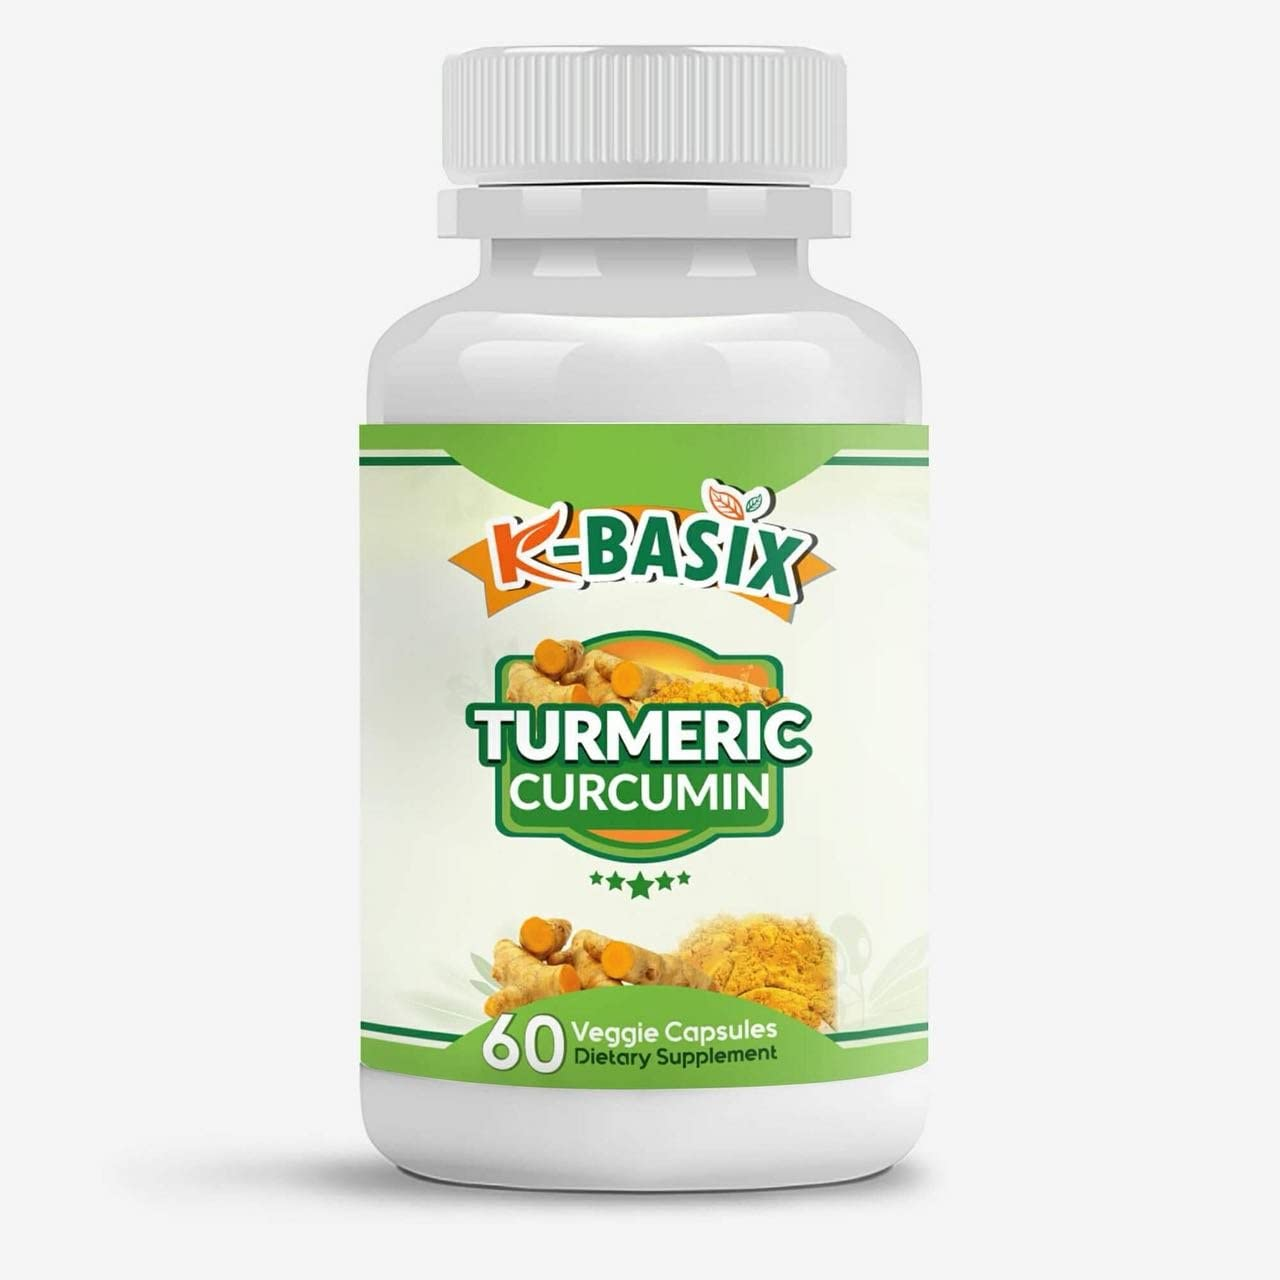 Turmeric Curcumin Pills with Bioperine 600mg – Max Potency of 95 Curcuminoids – Premium Pain Relief Joint Support – 1 Month Supply by K Basix